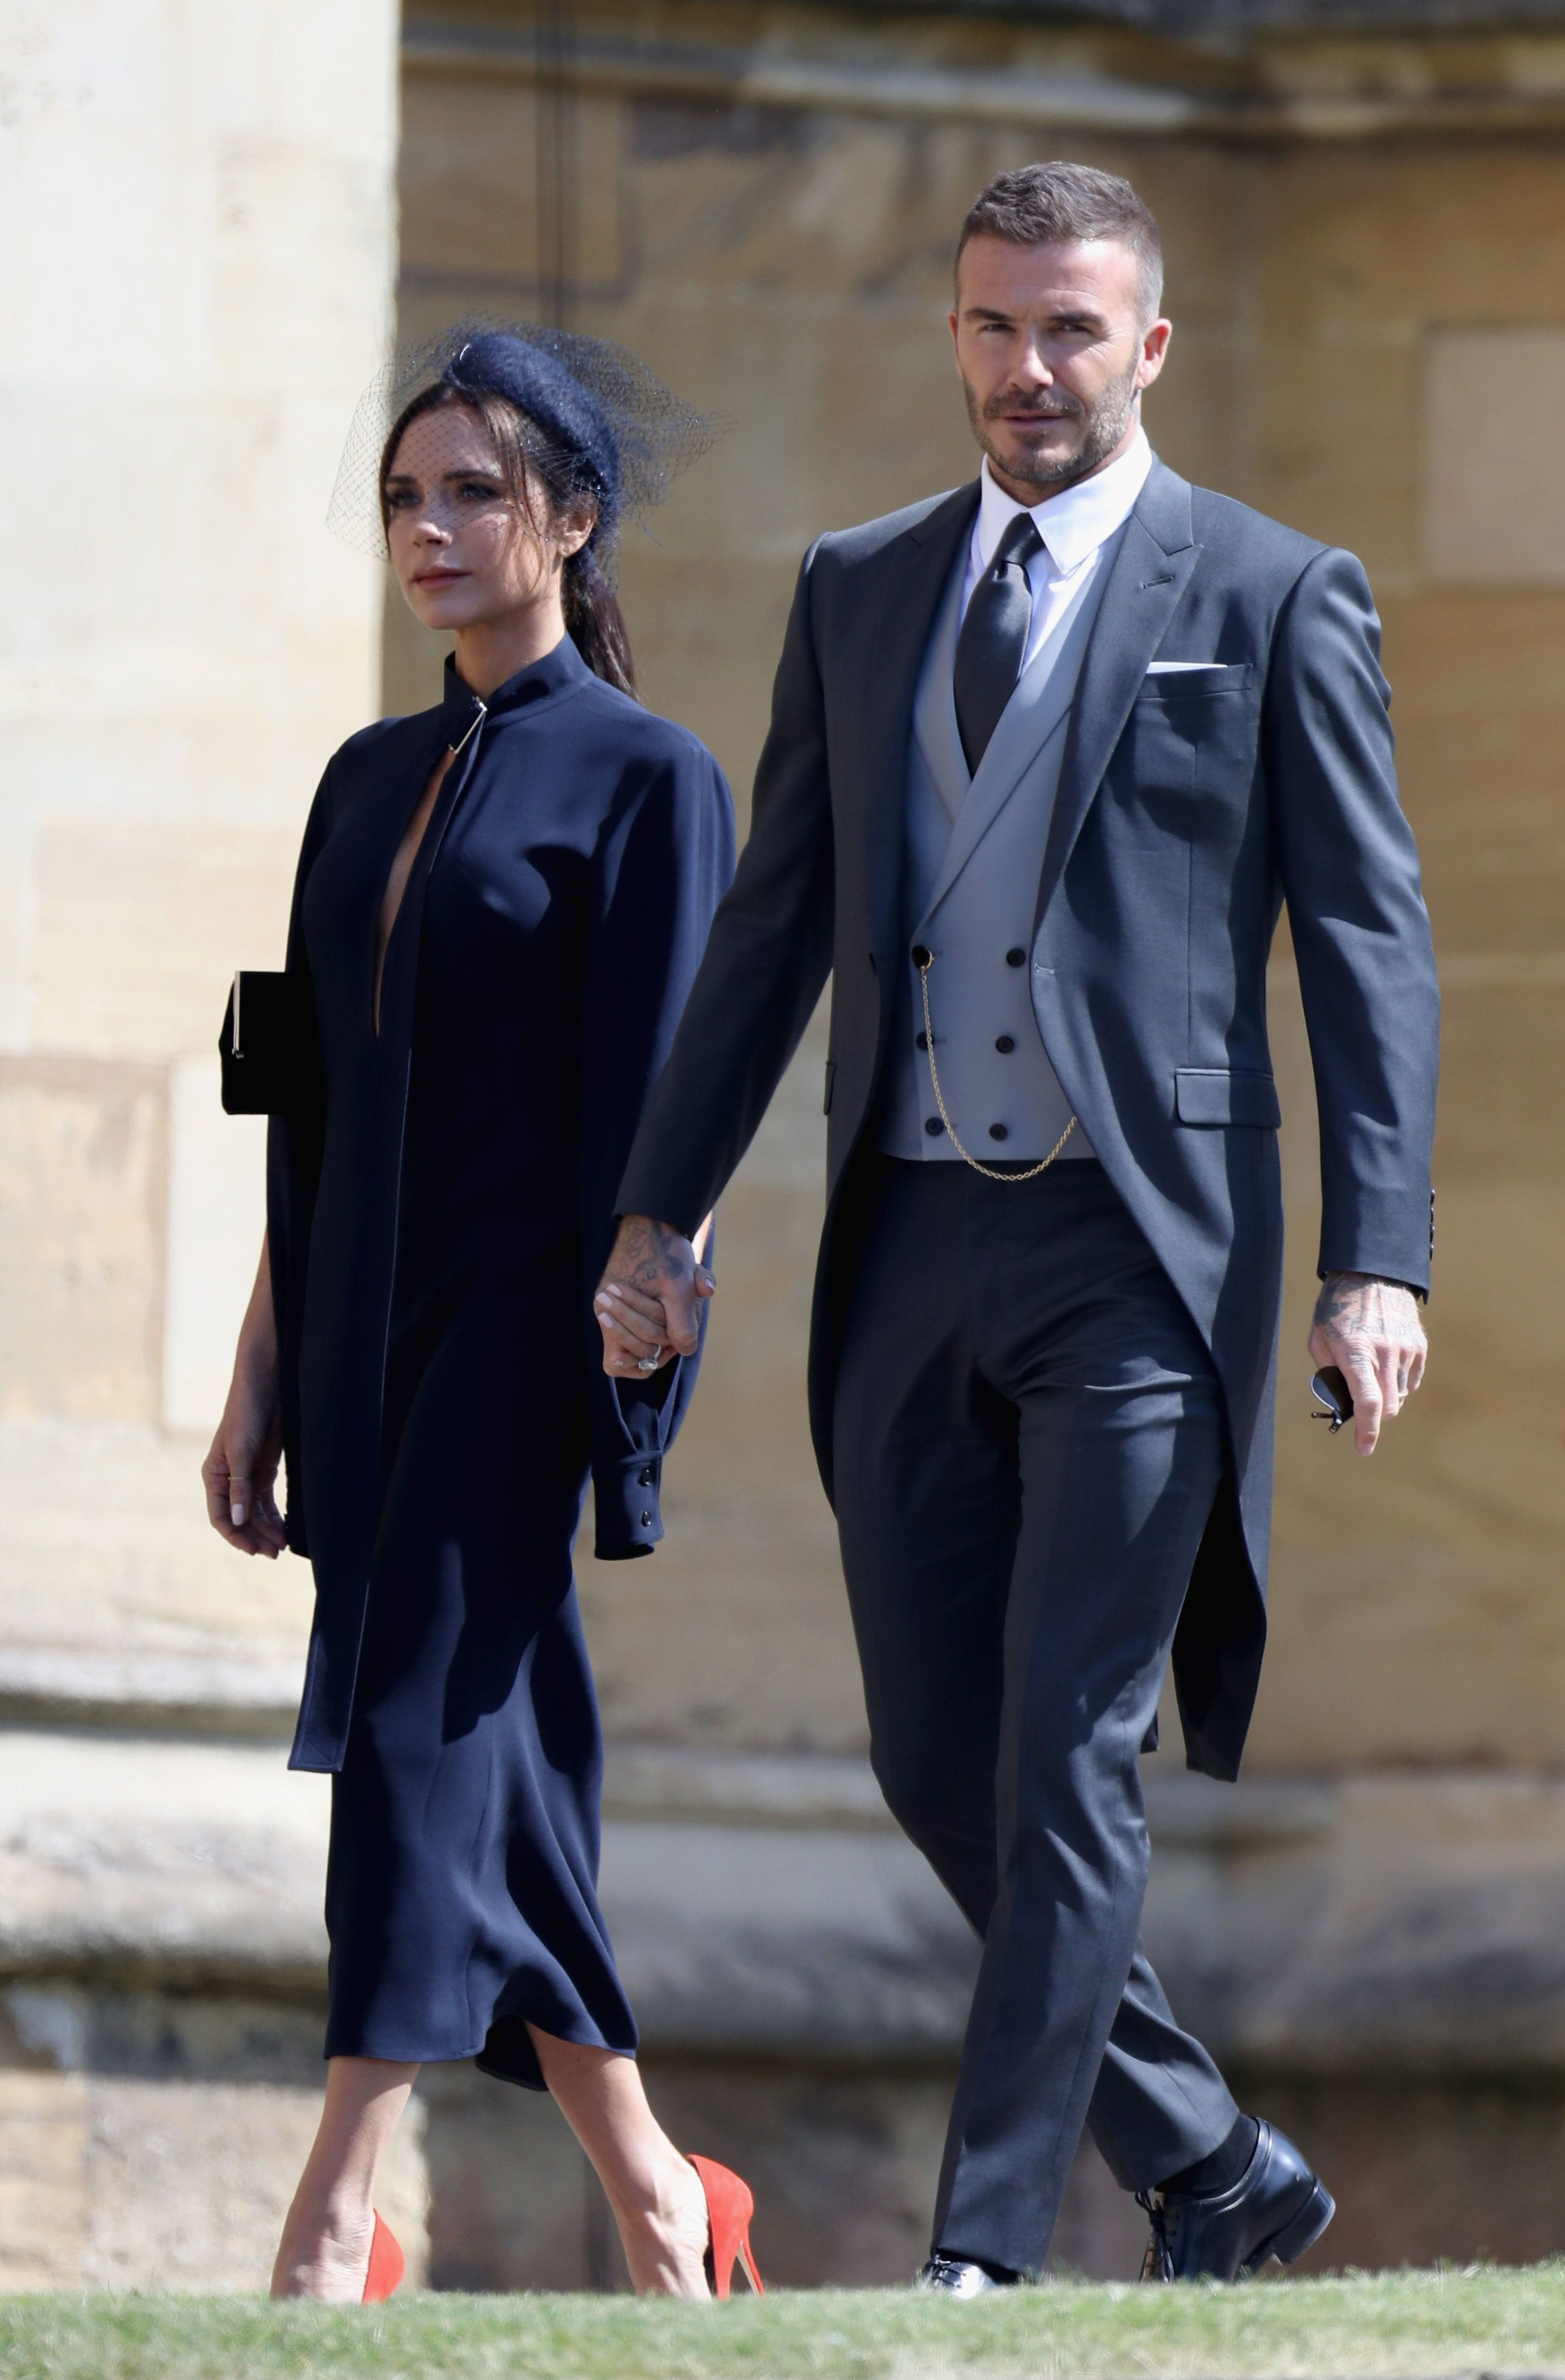 'DIFFICULT': David Beckham Admits He And Victoria Have Worked Through 'Difficult Situations' In